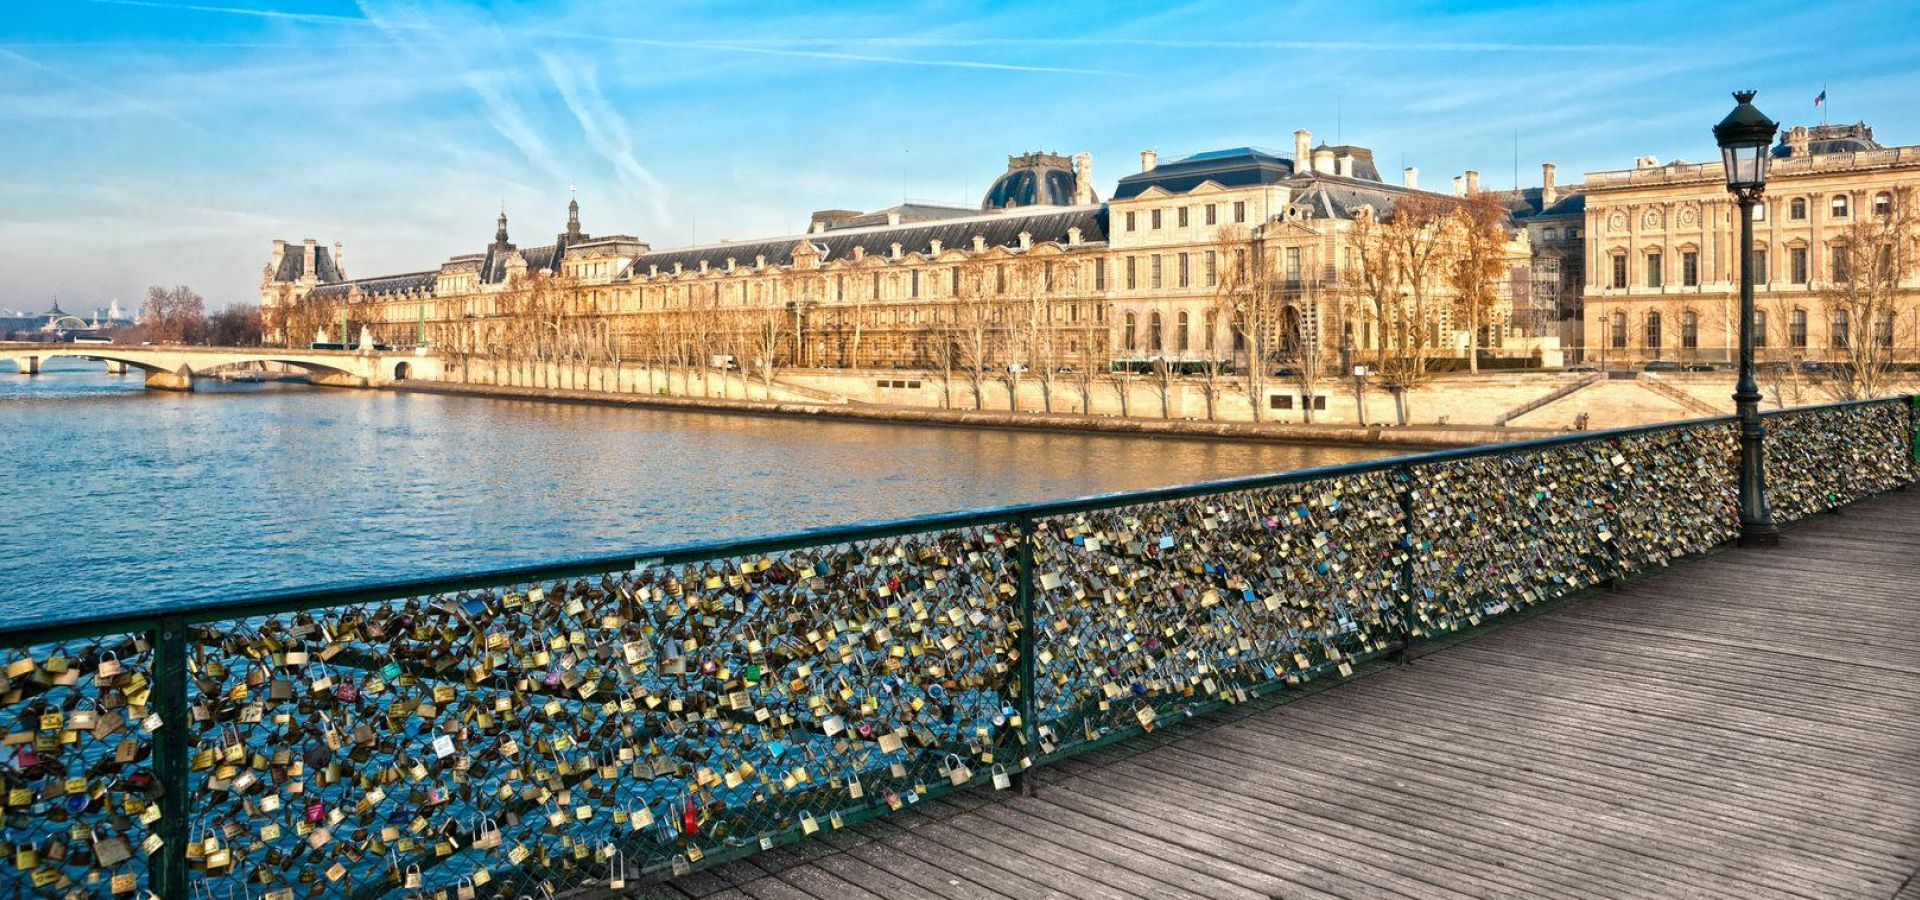 Lead-image-View-of-the-Louvre-Museum-and-Pont-des-arts,-Paris---.jpg